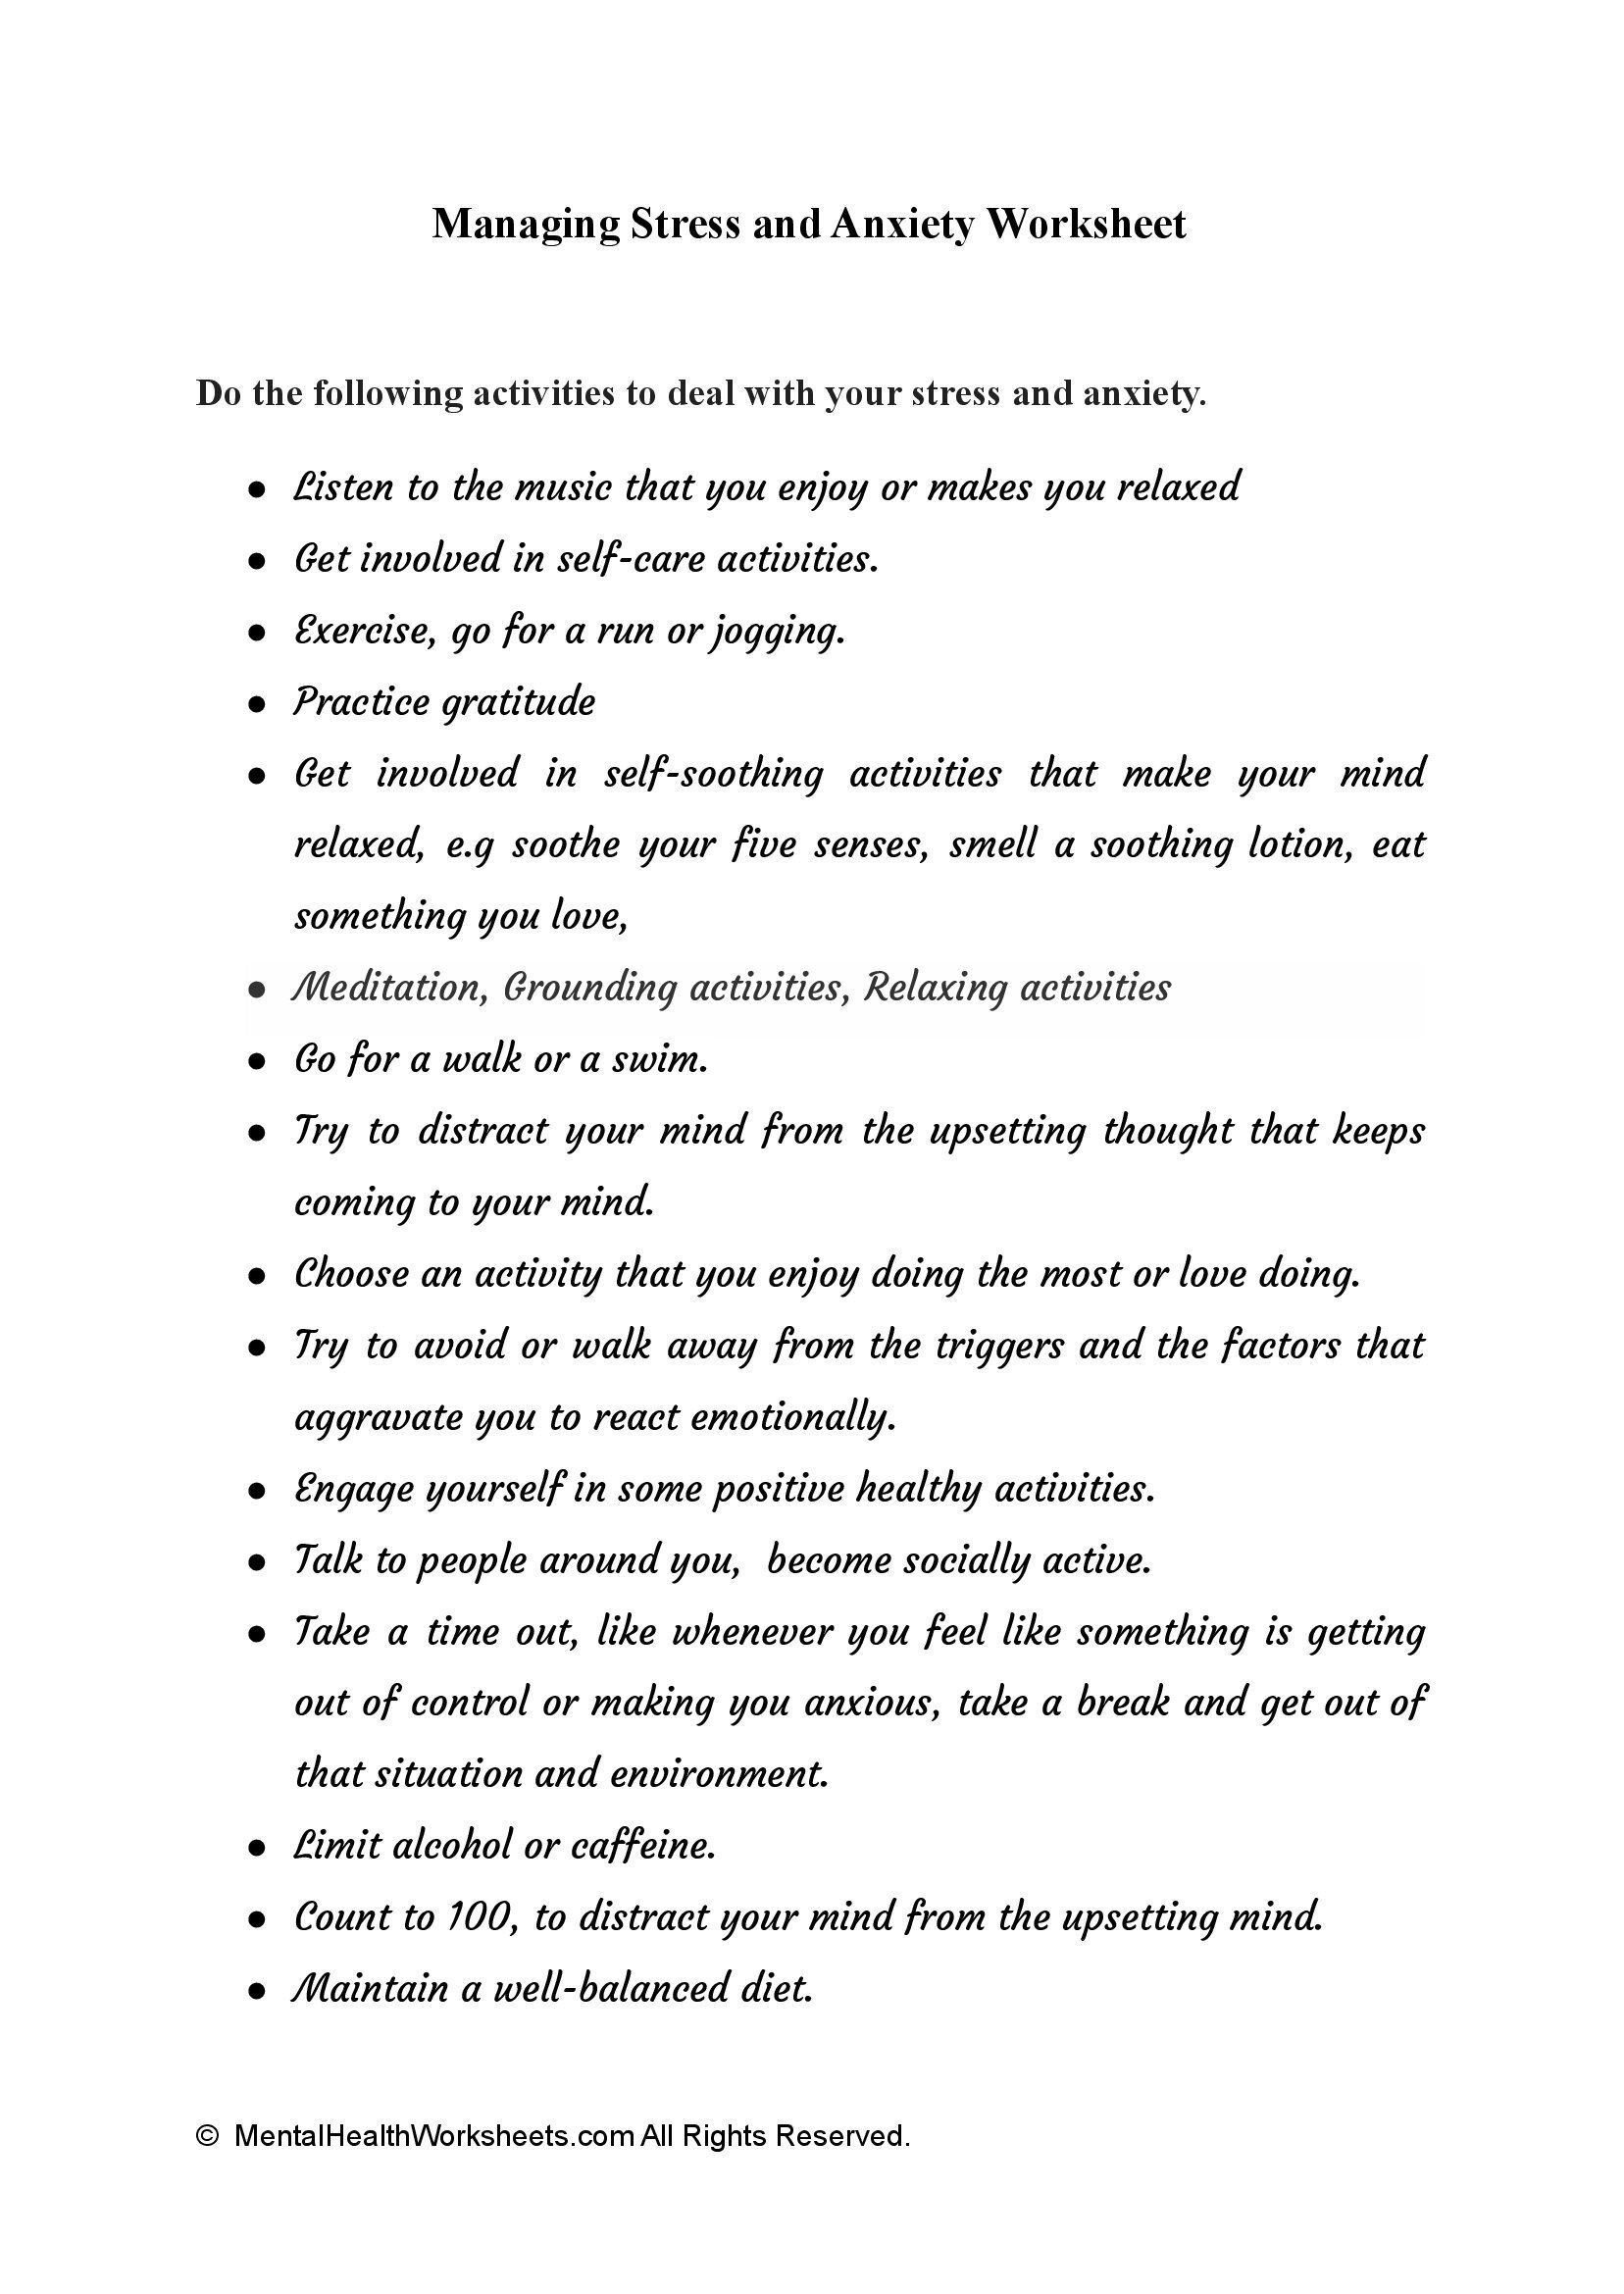 Managing Stress and Anxiety Worksheet